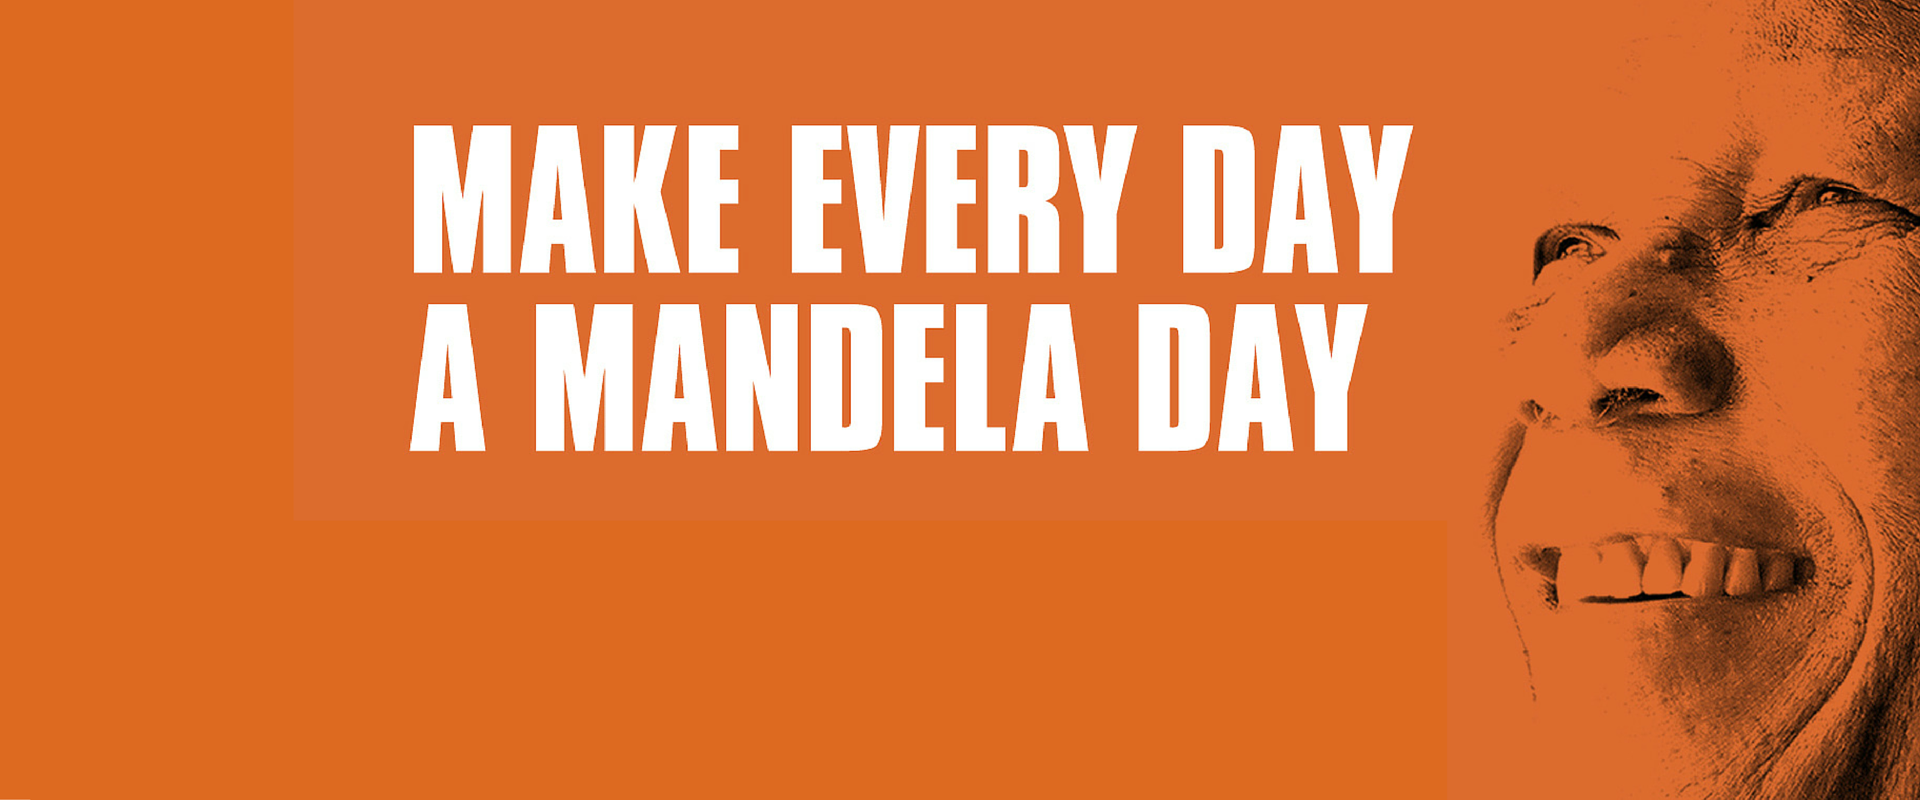 PACKAGE MEALS ACROSS THE GLOBE ON MANDELA DAY